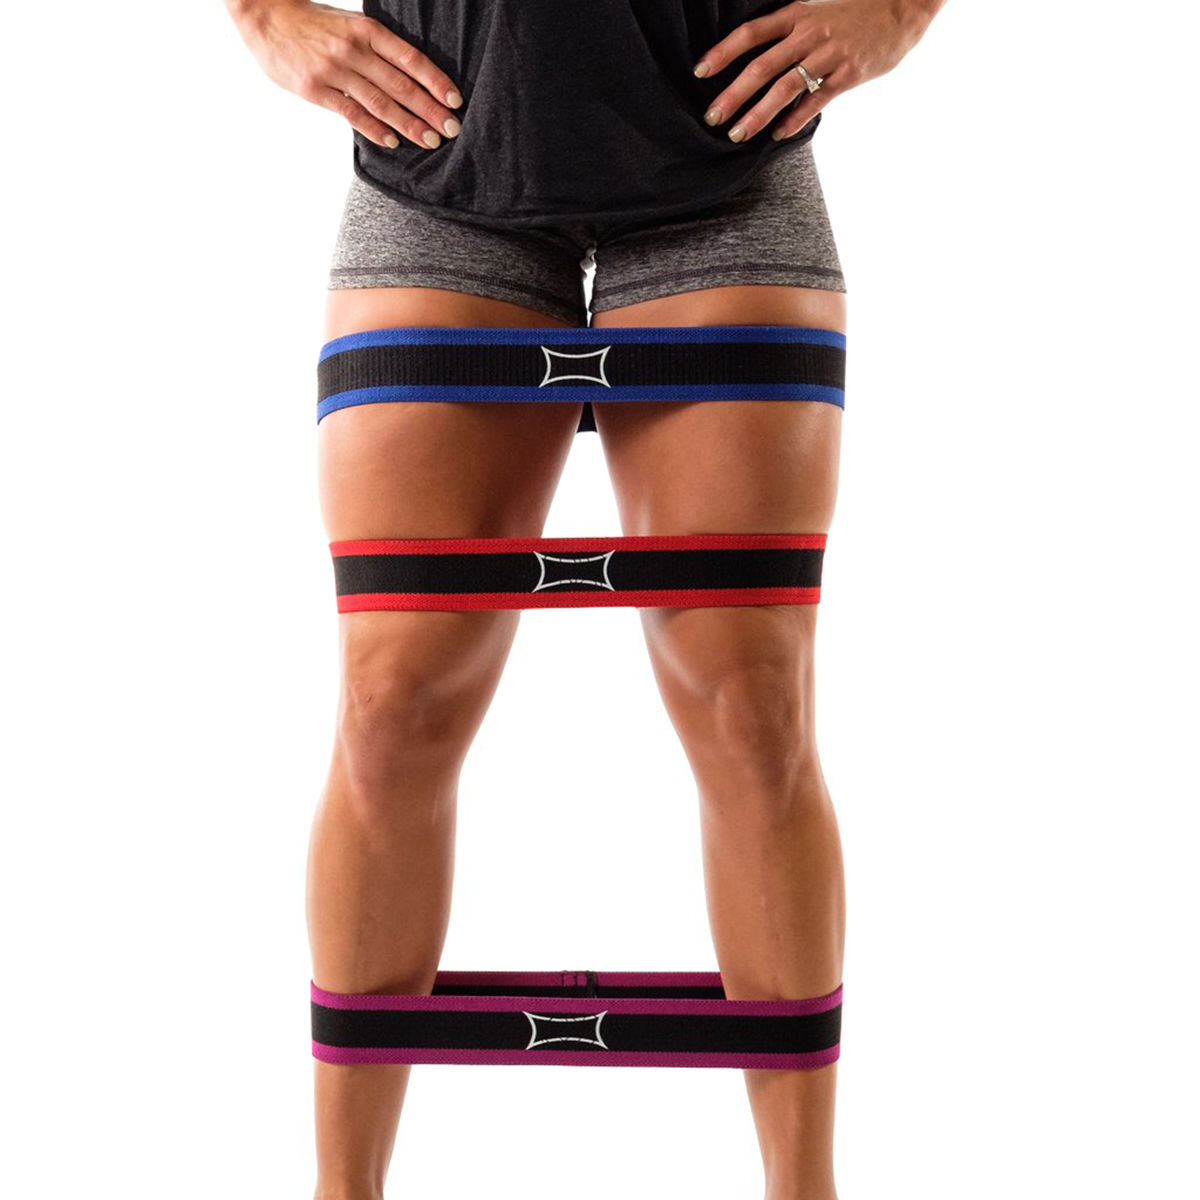 warm-up support Sling Shot Hip Circle Resistance Band by Mark Bell Purple